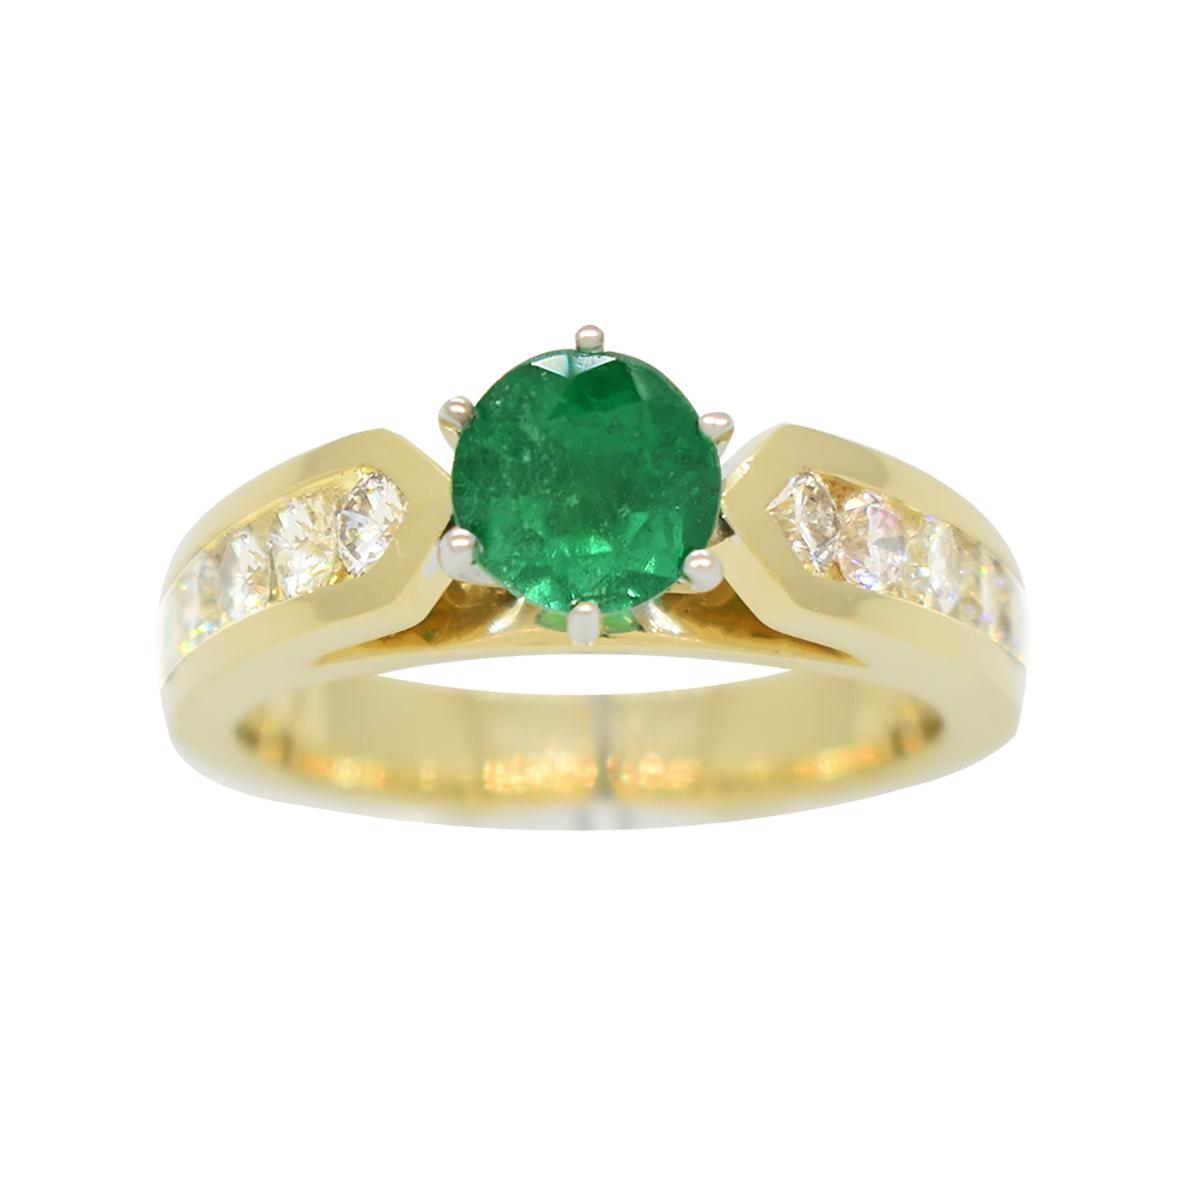 emerald-engagement-ring-in-2-tones-gold-and-10-round-diamonds-in-cathedral-ring-style